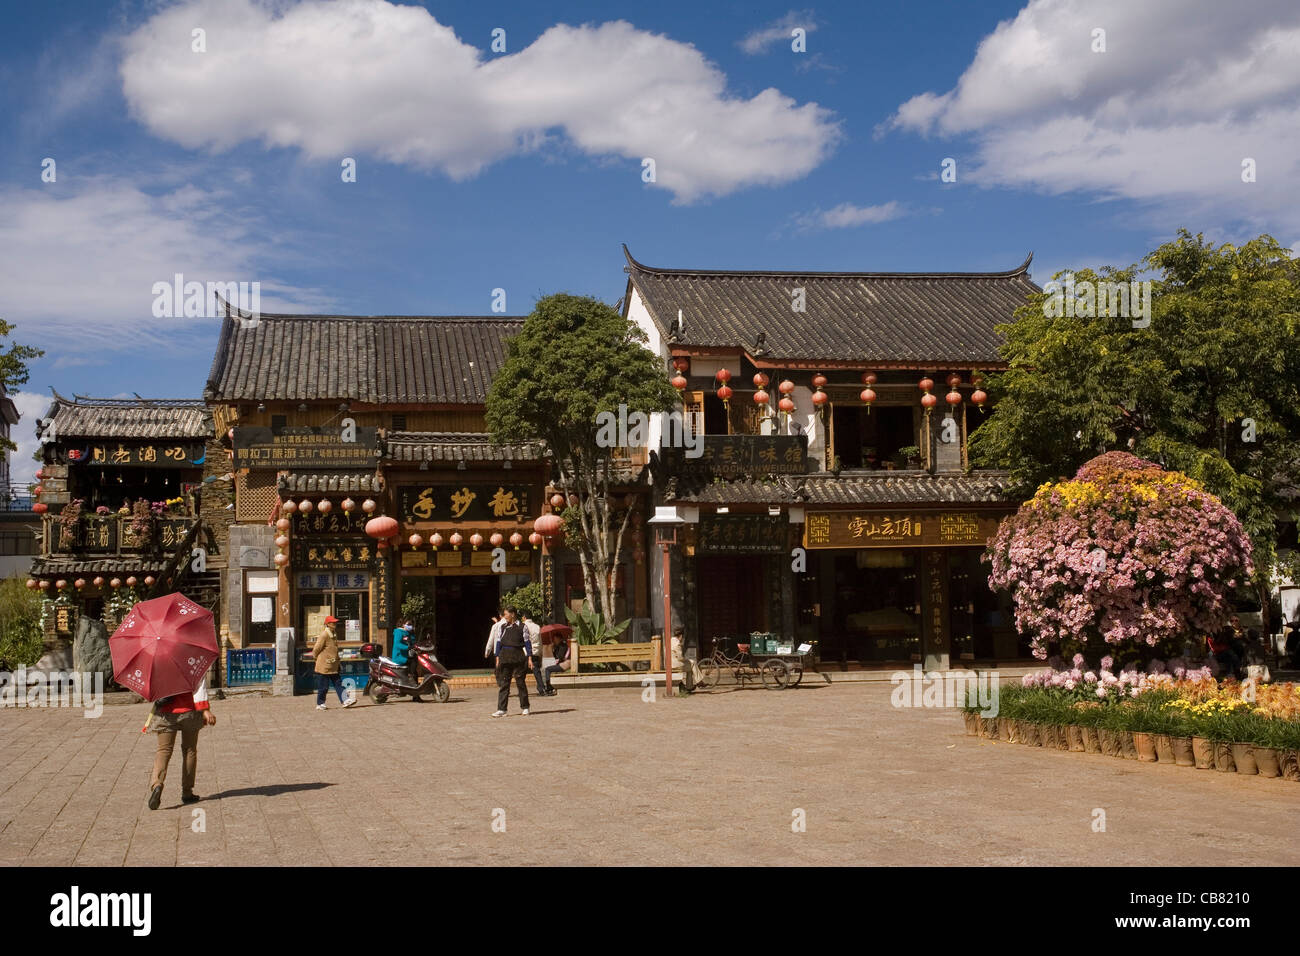 China Yunnan Lijiang, old town main square - Stock Image